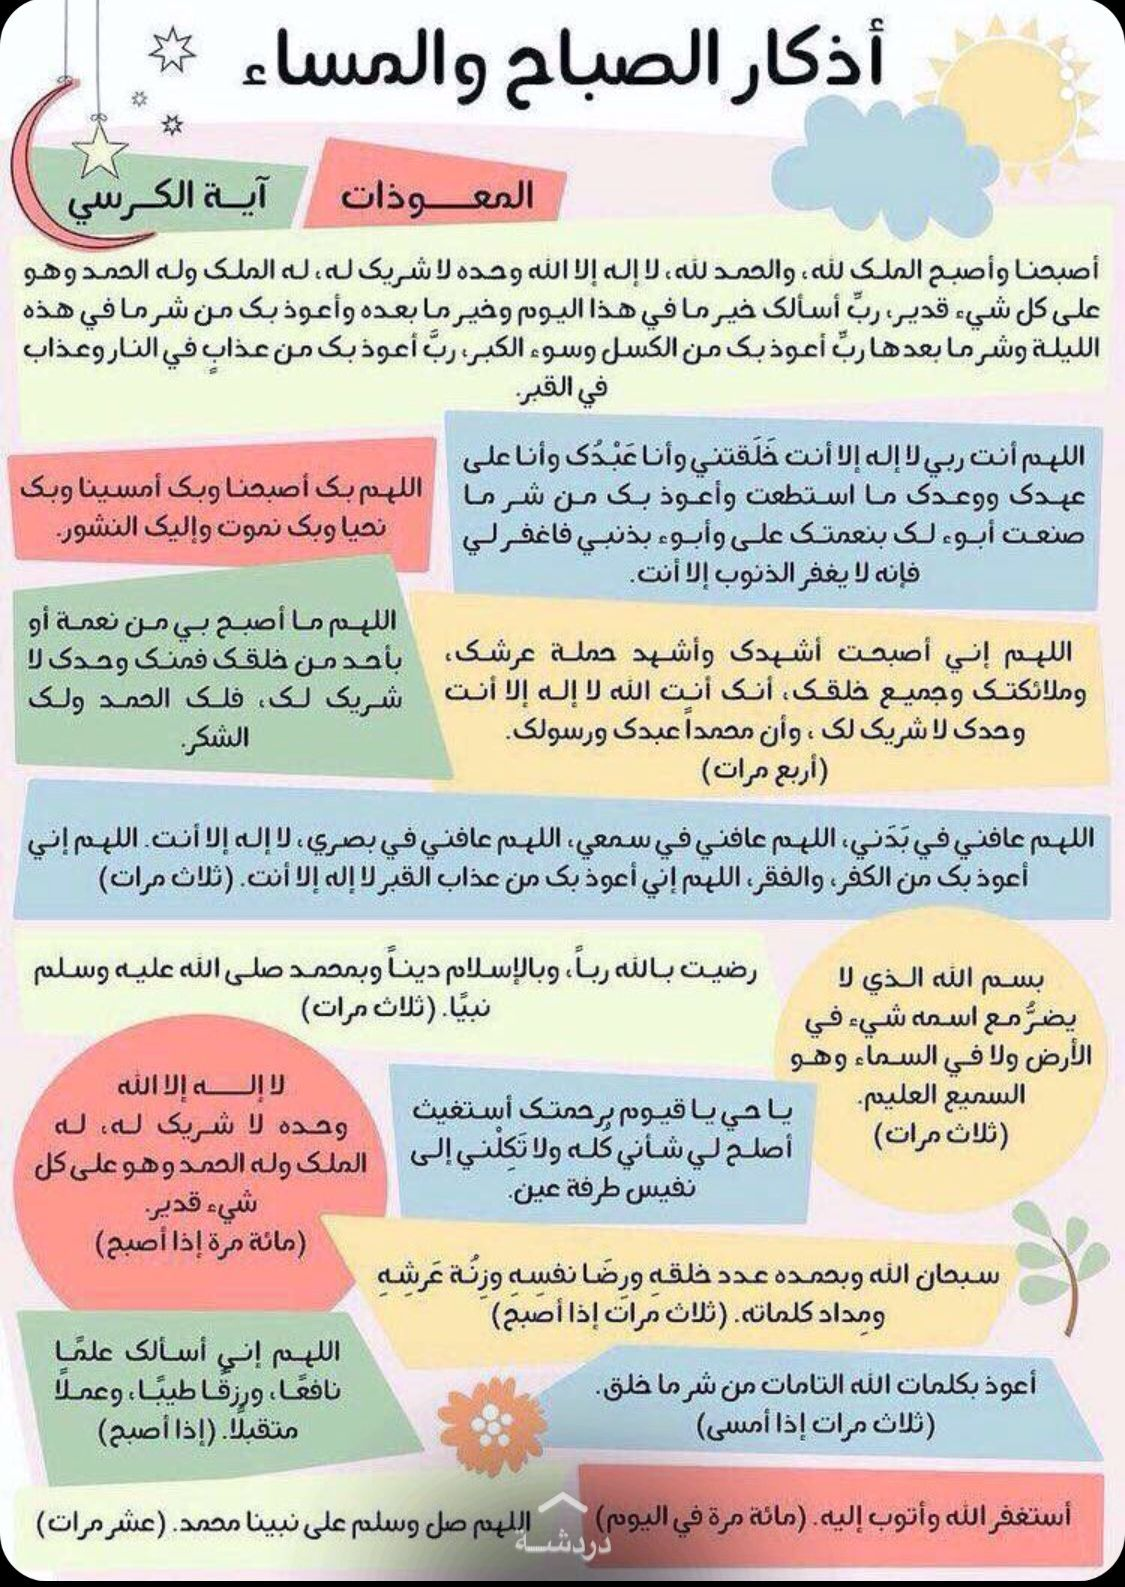 Pin By Maha Alagel On إيمان Islam Facts Ramadan Quotes Islamic Quotes Quran